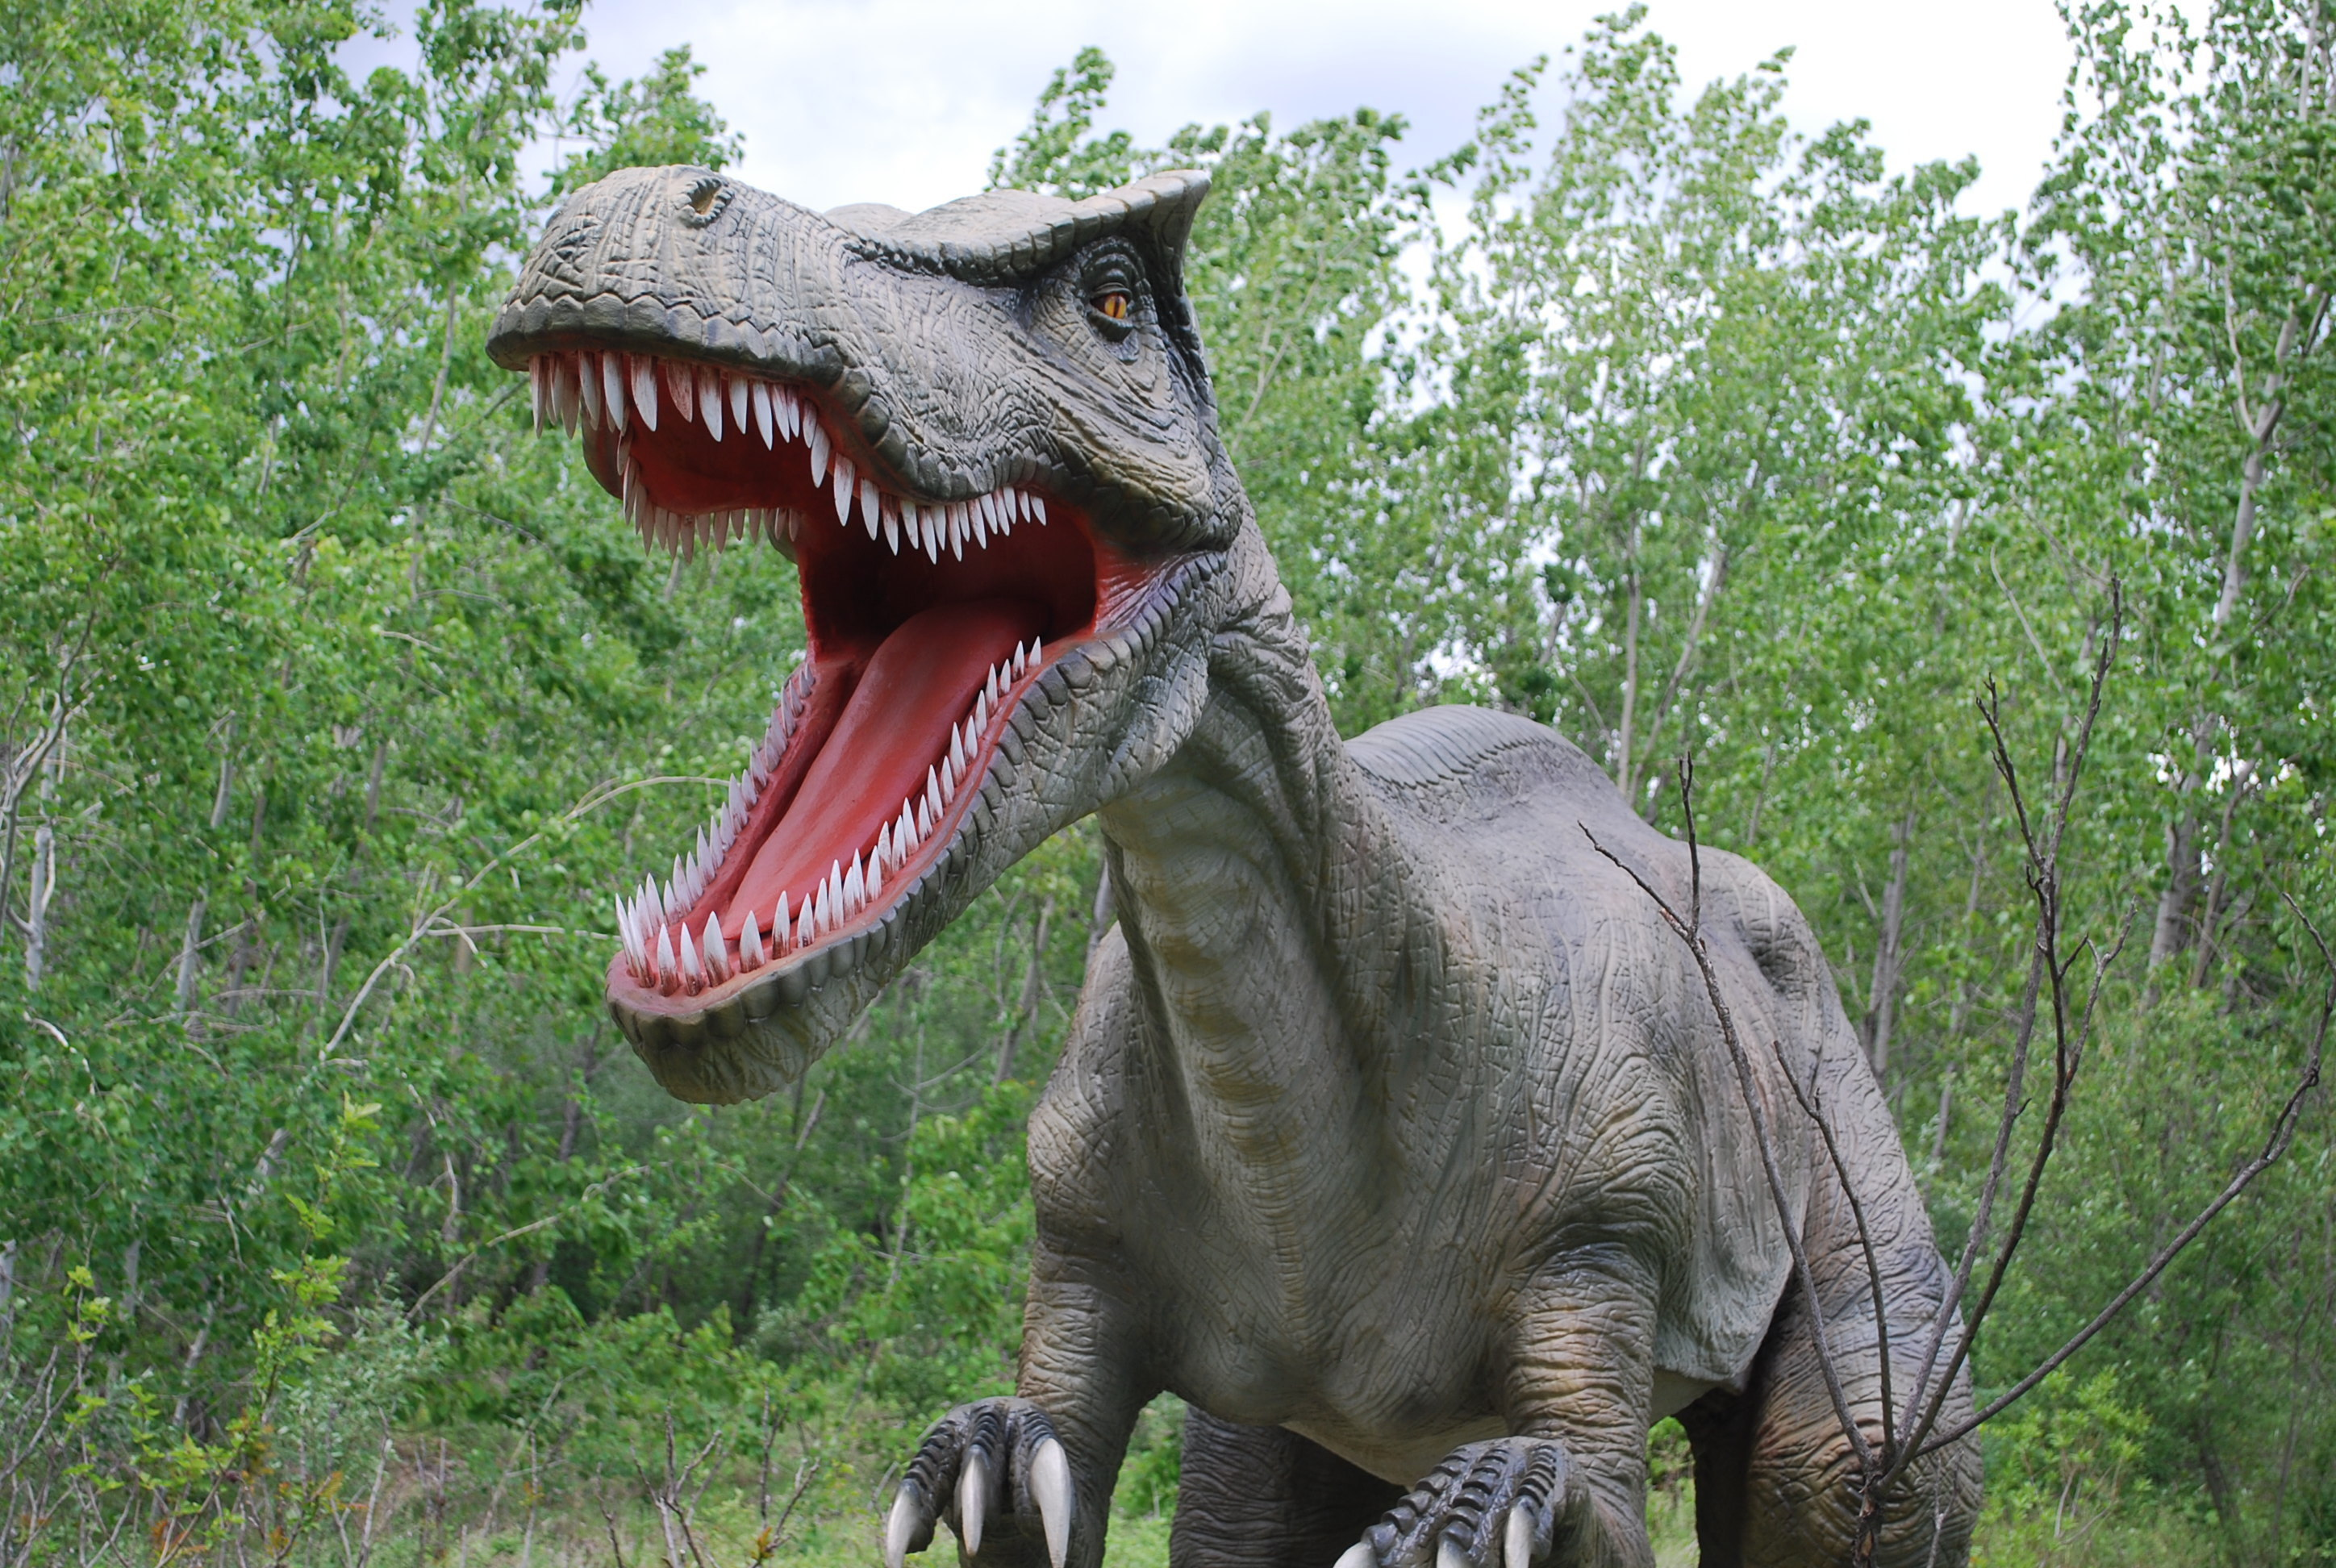 Walk among prehistoric creatures at Field Station: Dinosaurs